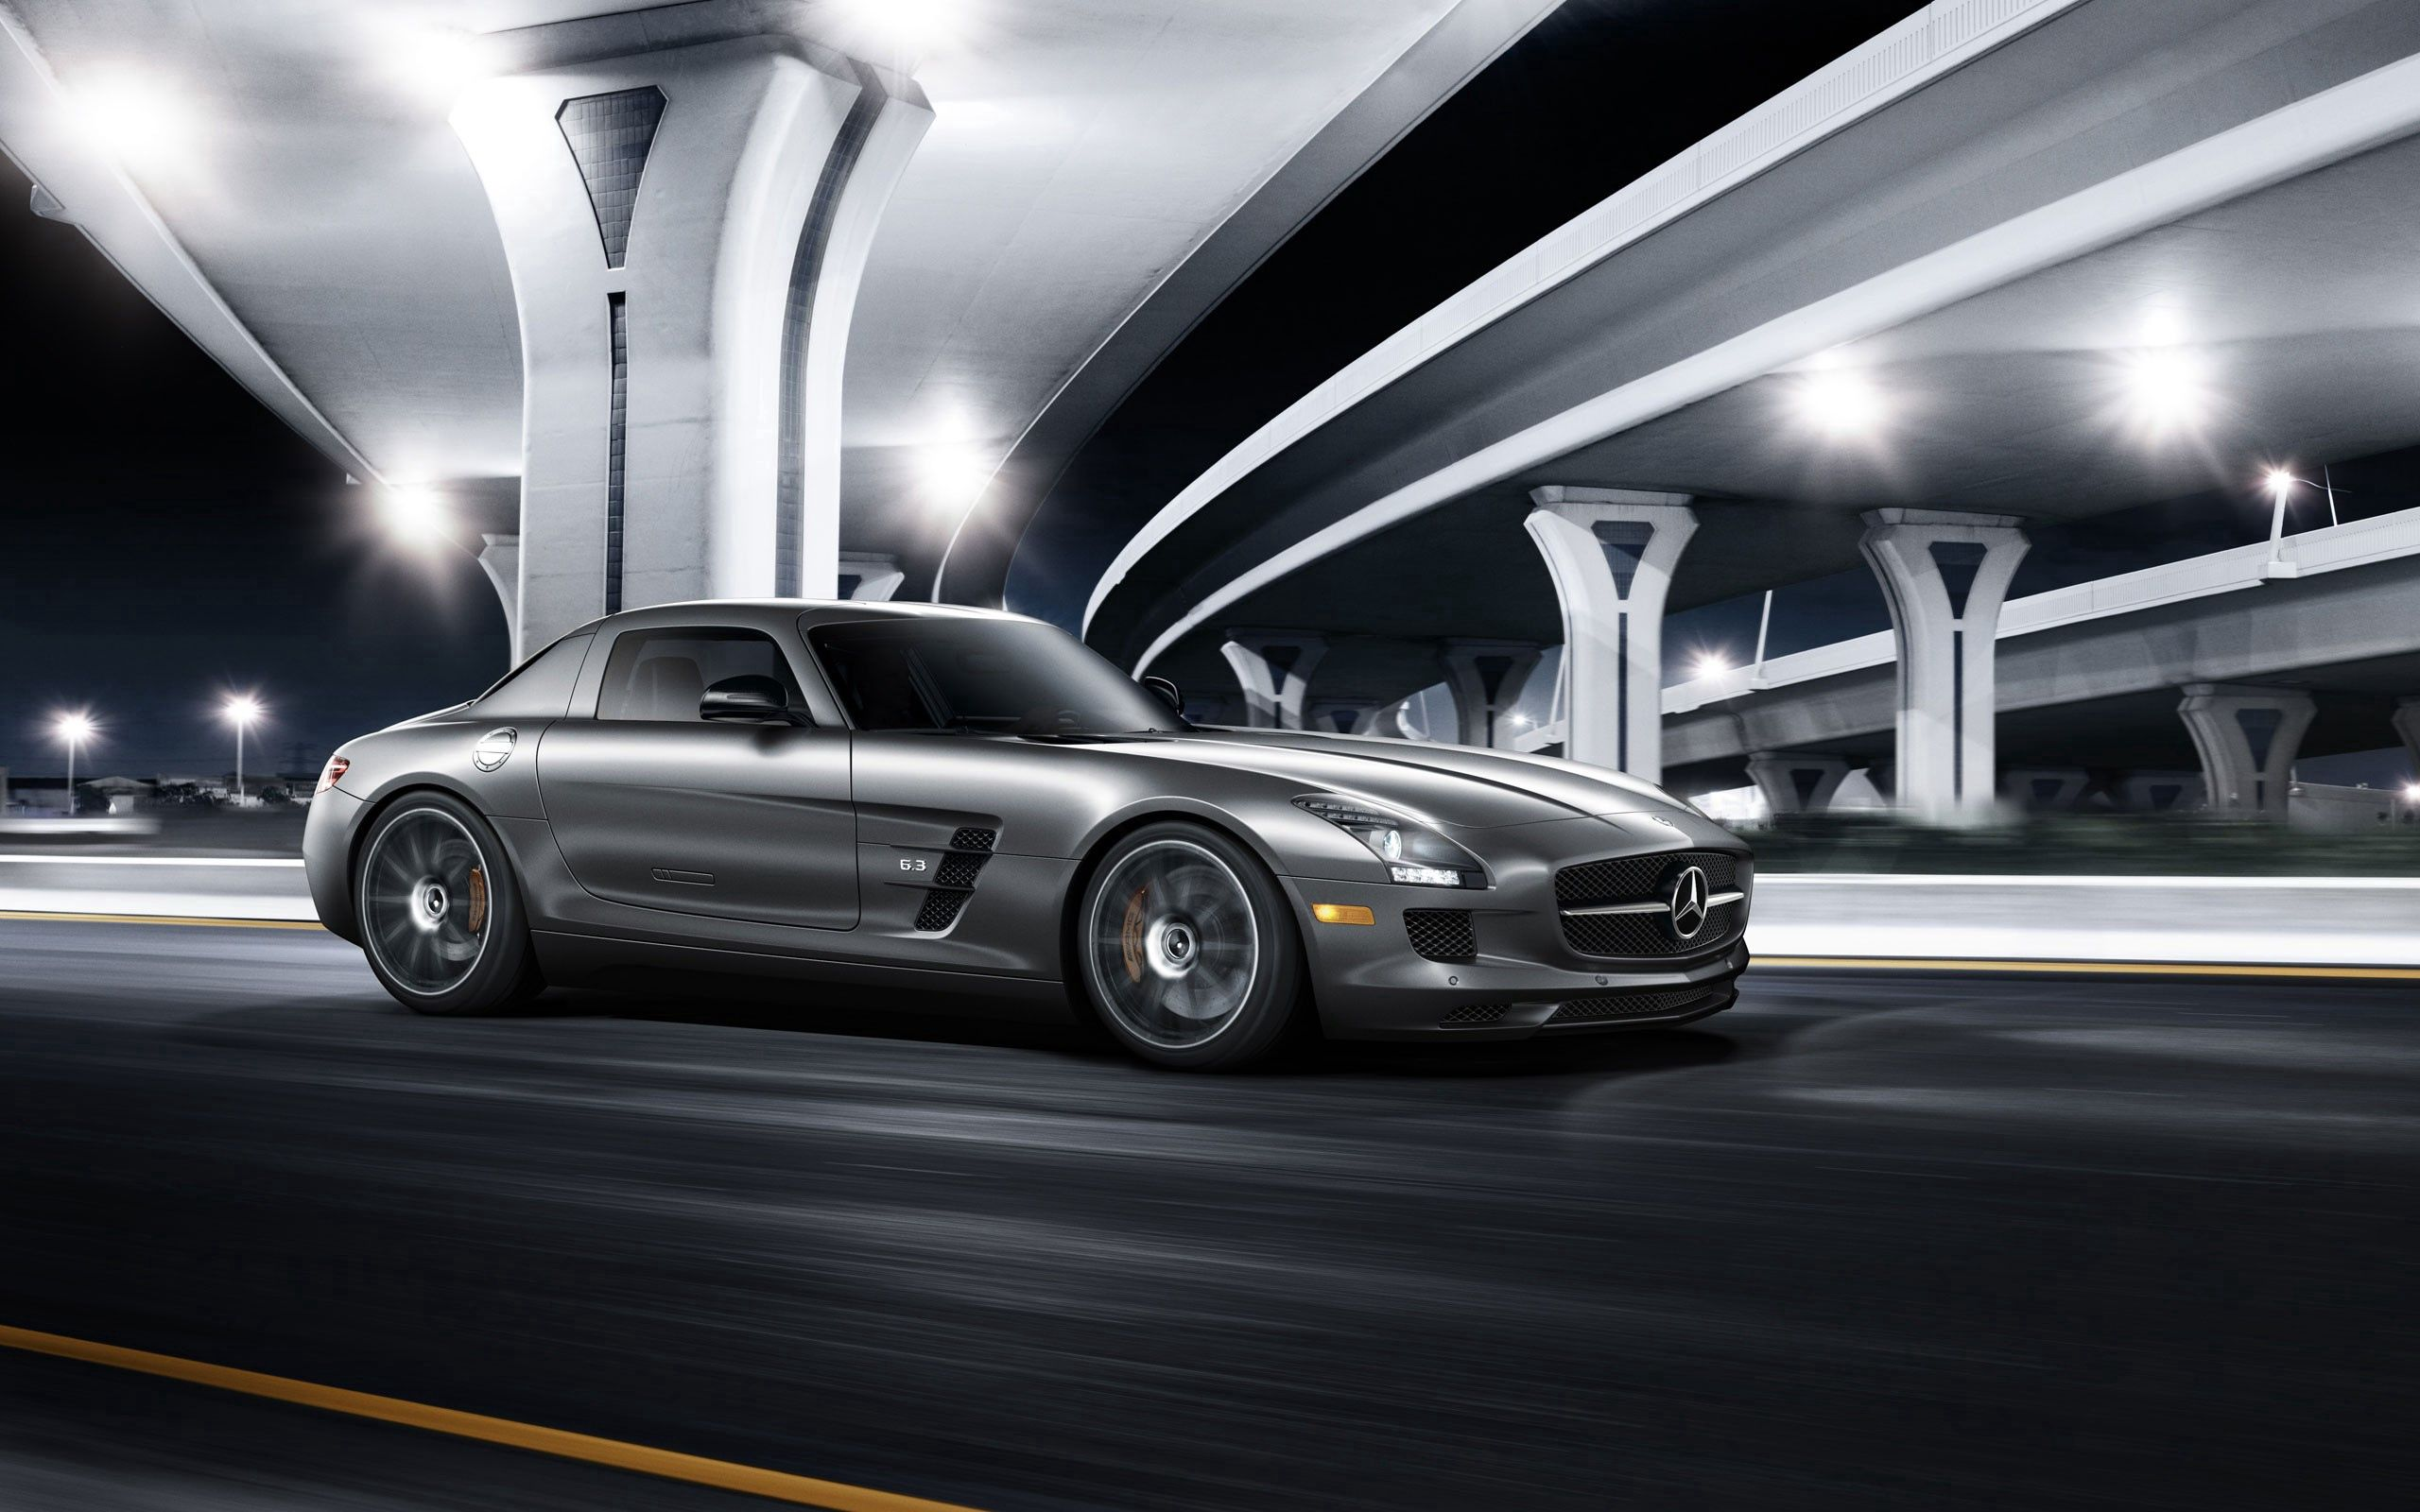 154874 download wallpaper Cars, Sls Amg, Sls Amg Gt, 2013, Auto, Style screensavers and pictures for free